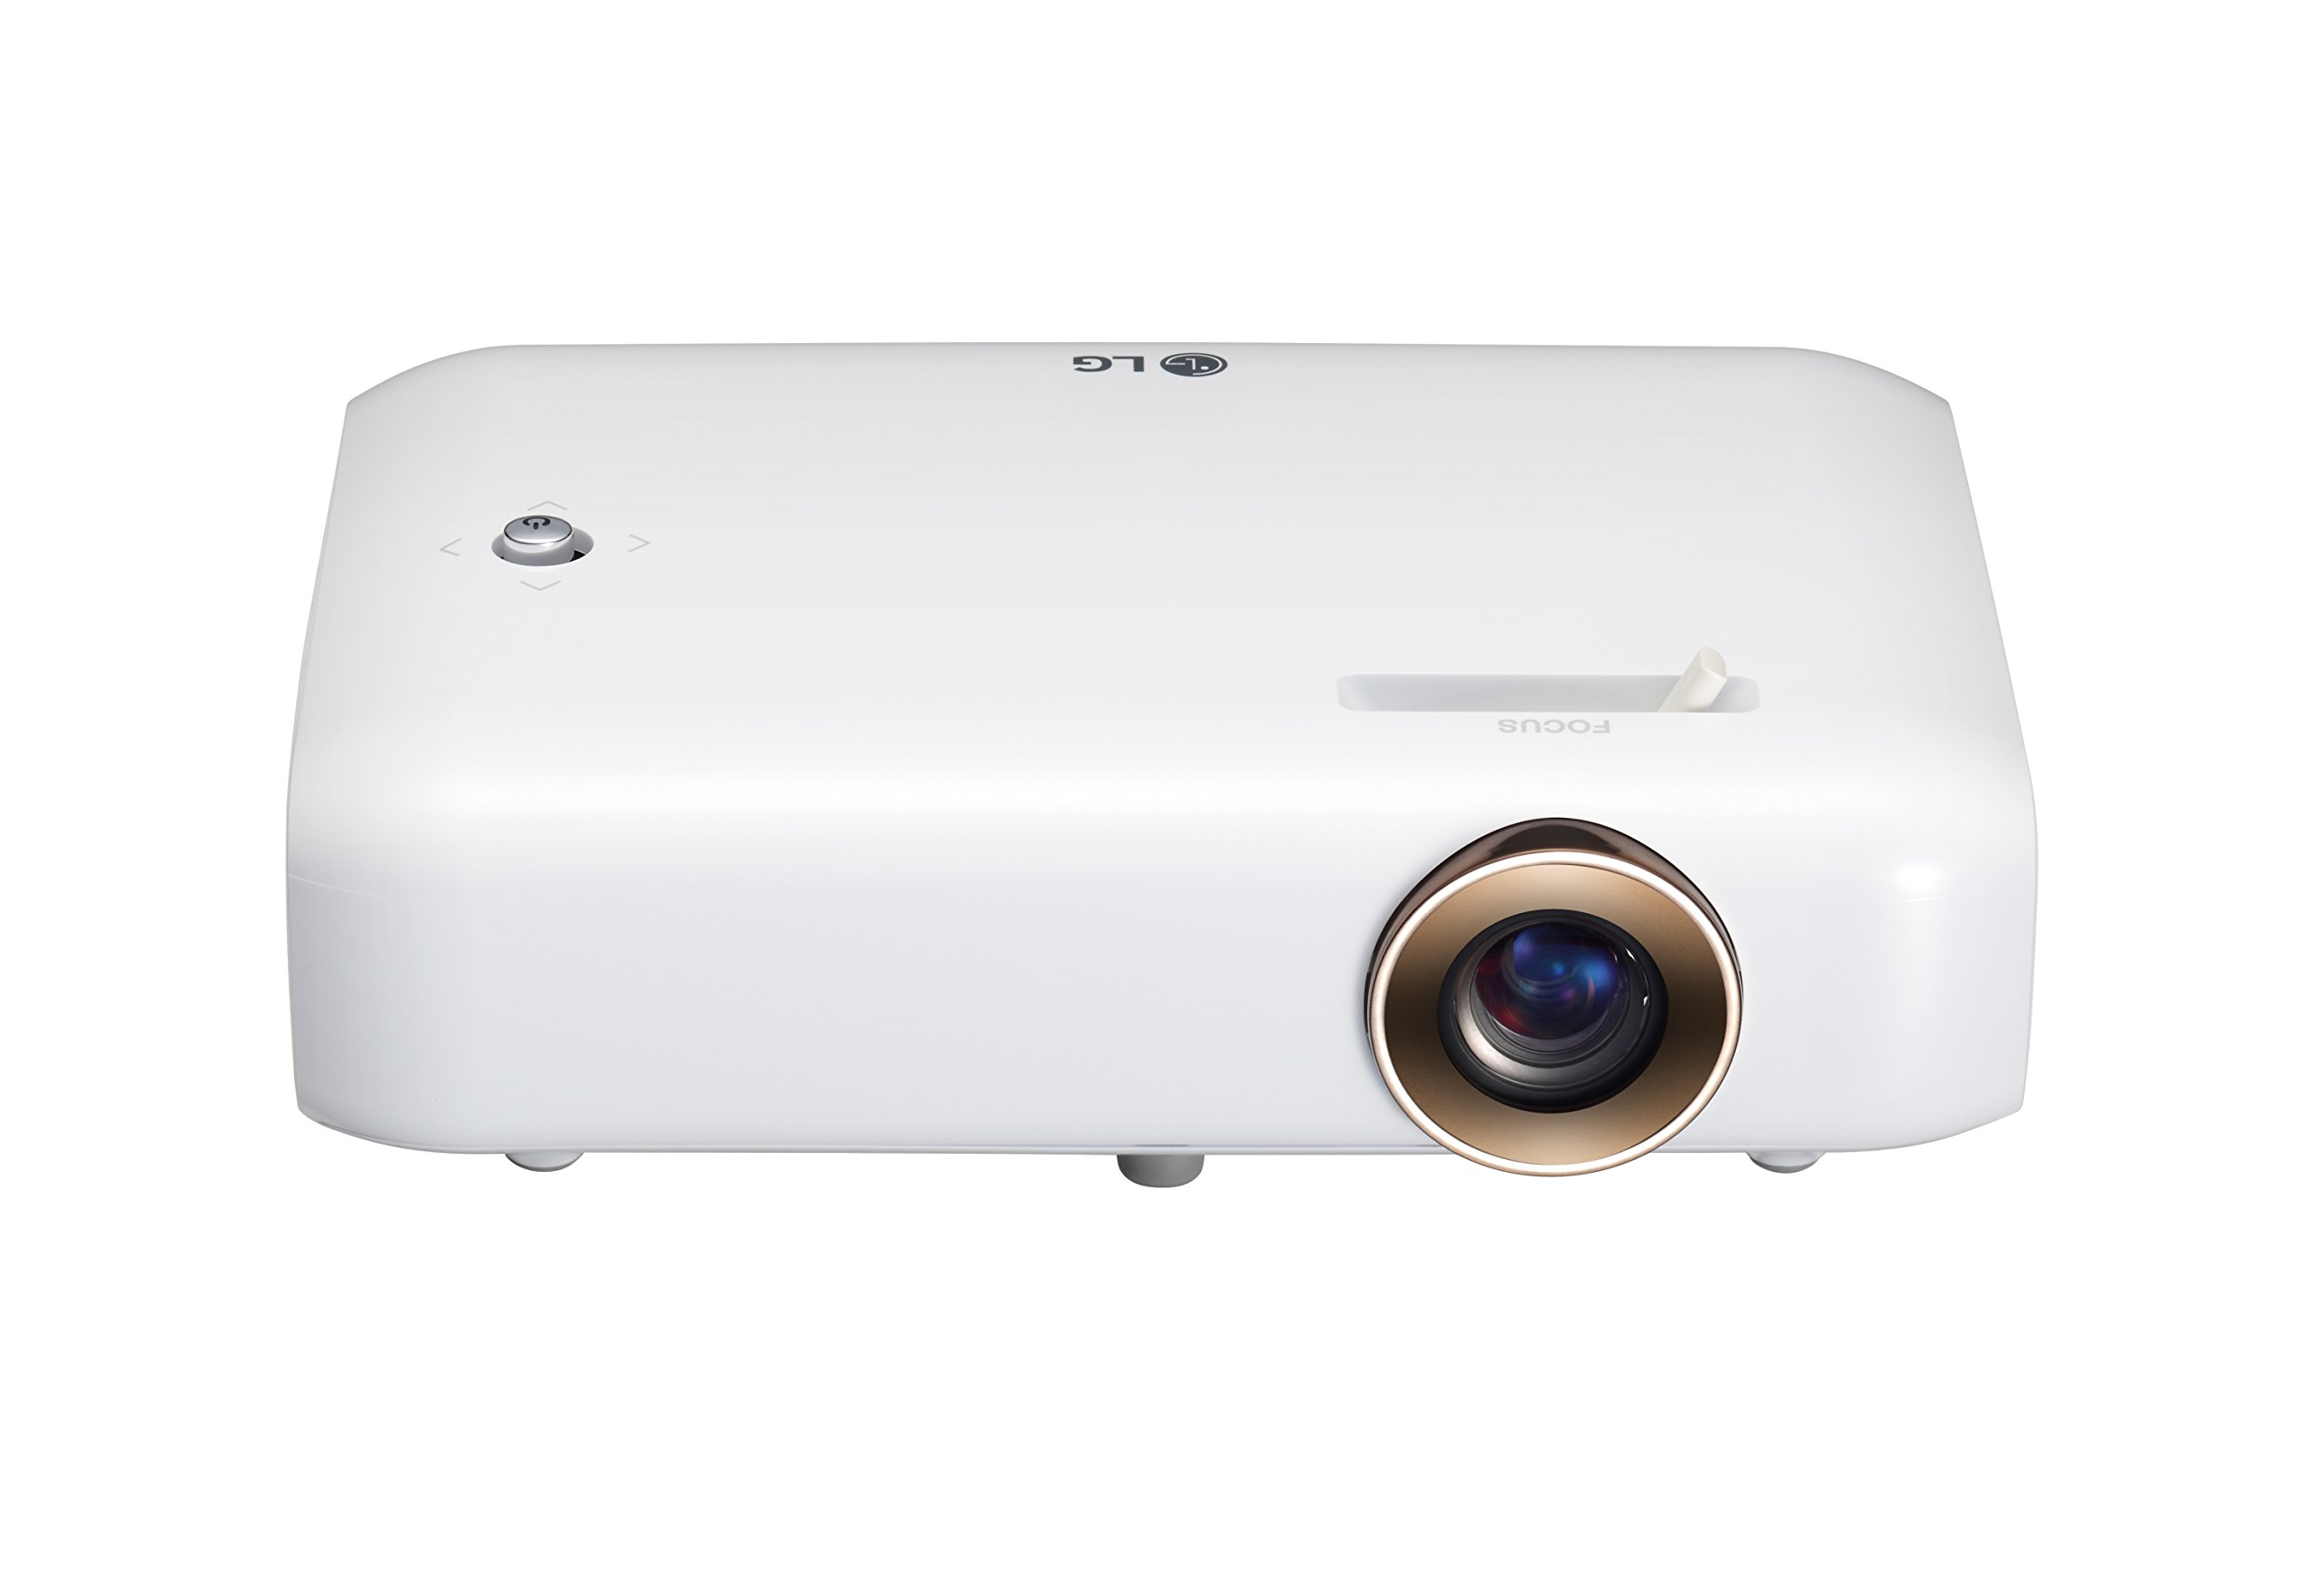 LG Electronics PH550 Minibeam Projector with Bluetooth Sound, Screen Share and Built-in Battery (2016 Model) by LG